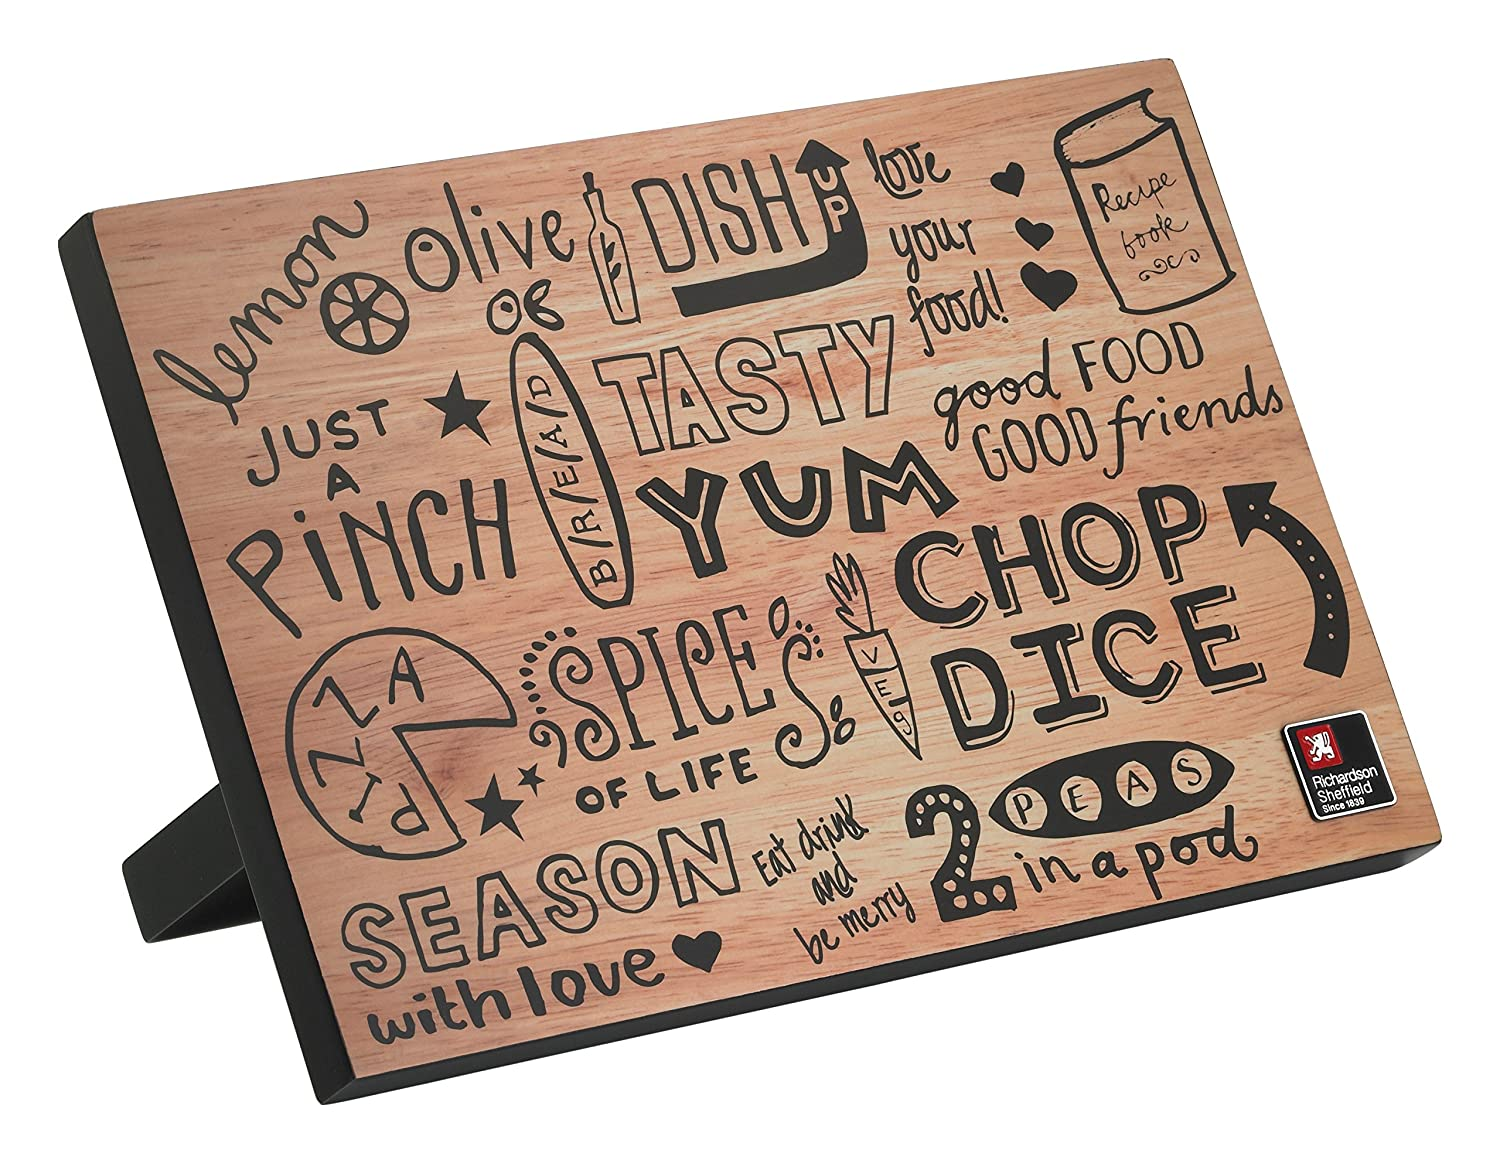 Richardson Sheffield Doodle portacoltelli magnetico universale supporto, nero Amefa UK Ltd R164PWRC98924